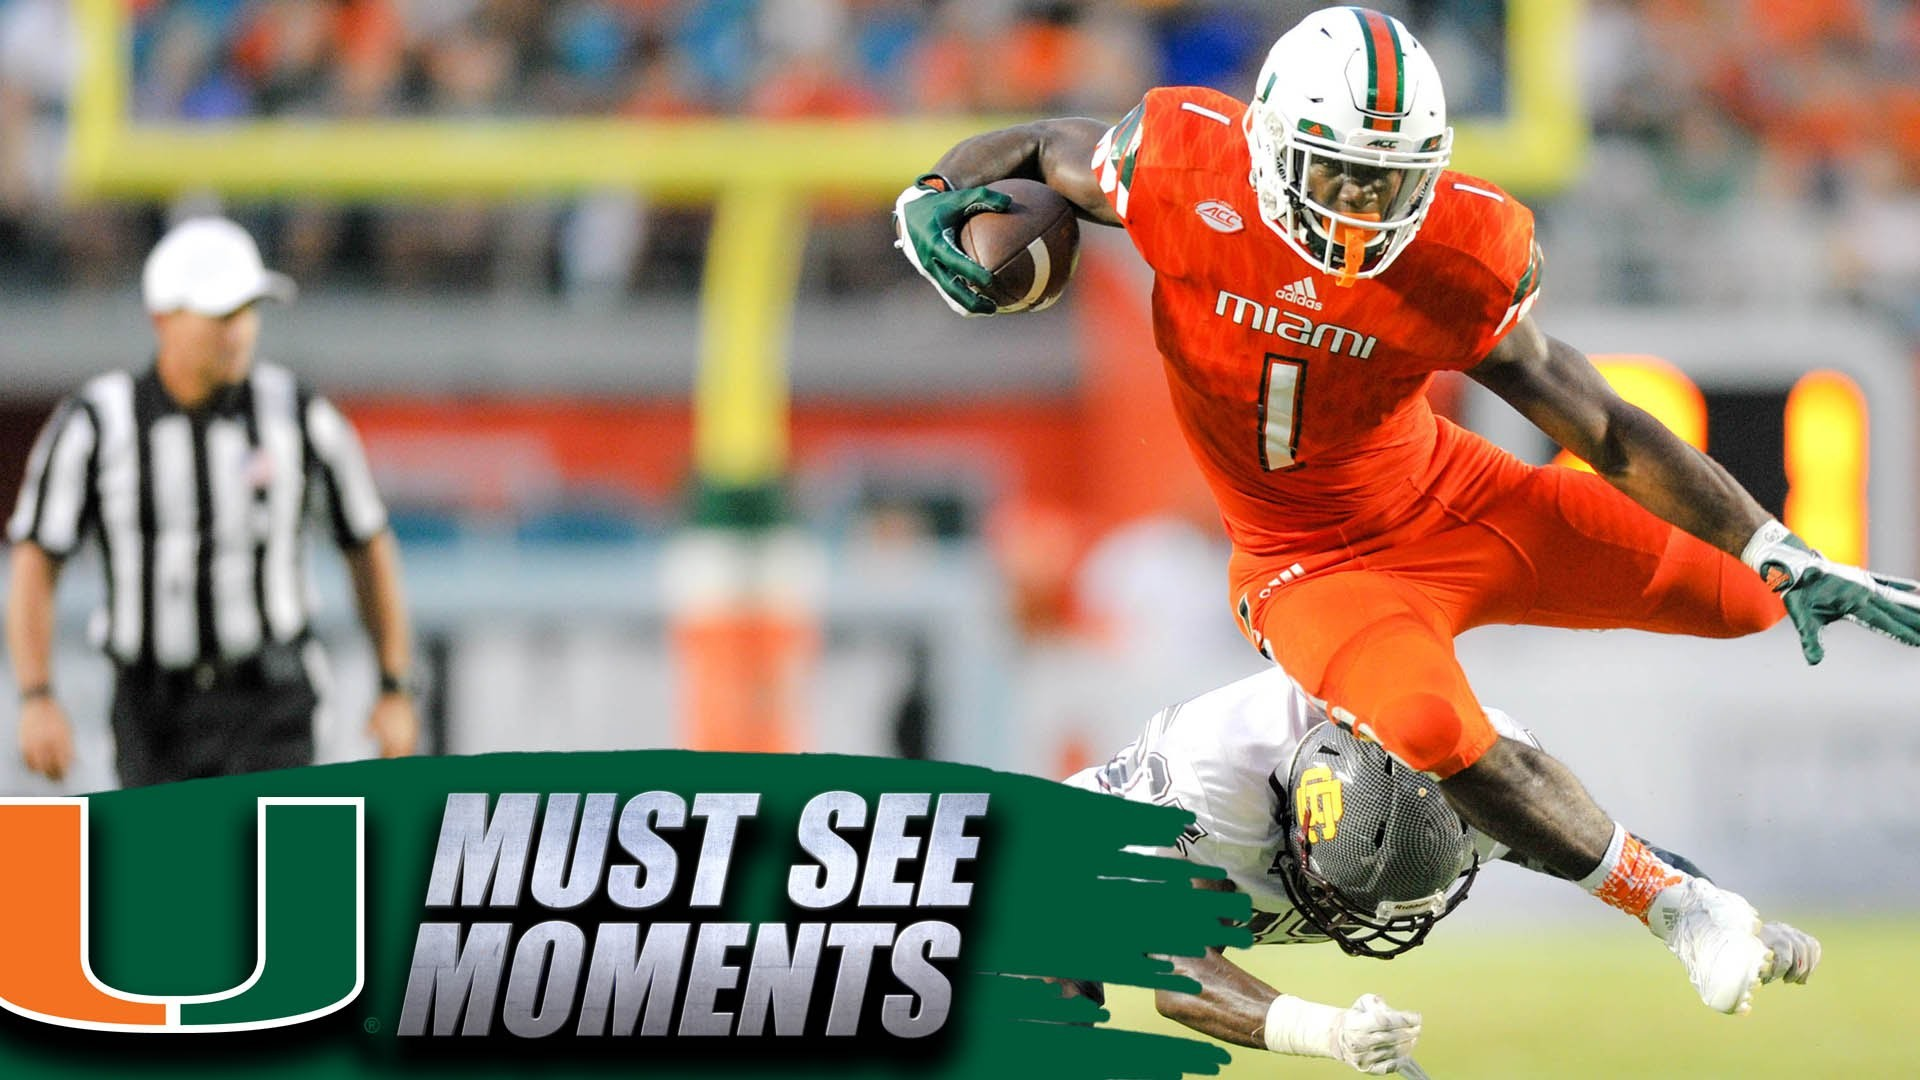 Miami Hurricanes Football: 21 Points in 2 Minutes   ACC Must See Moment –  YouTube